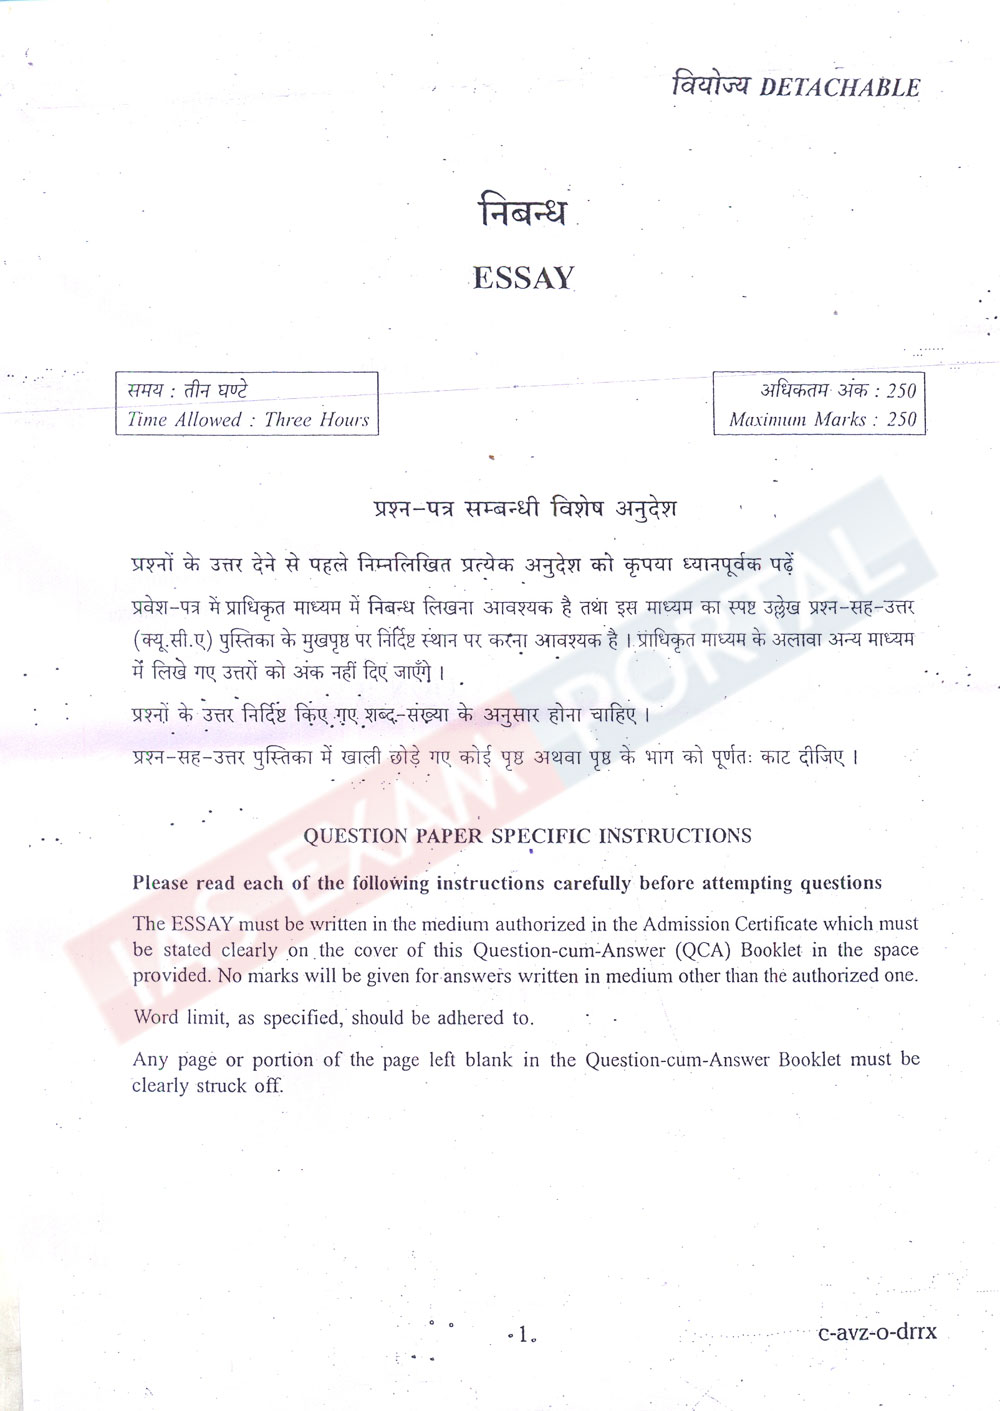 upsc ias mains 2015 essay compulsory question paper click here to full essay paper